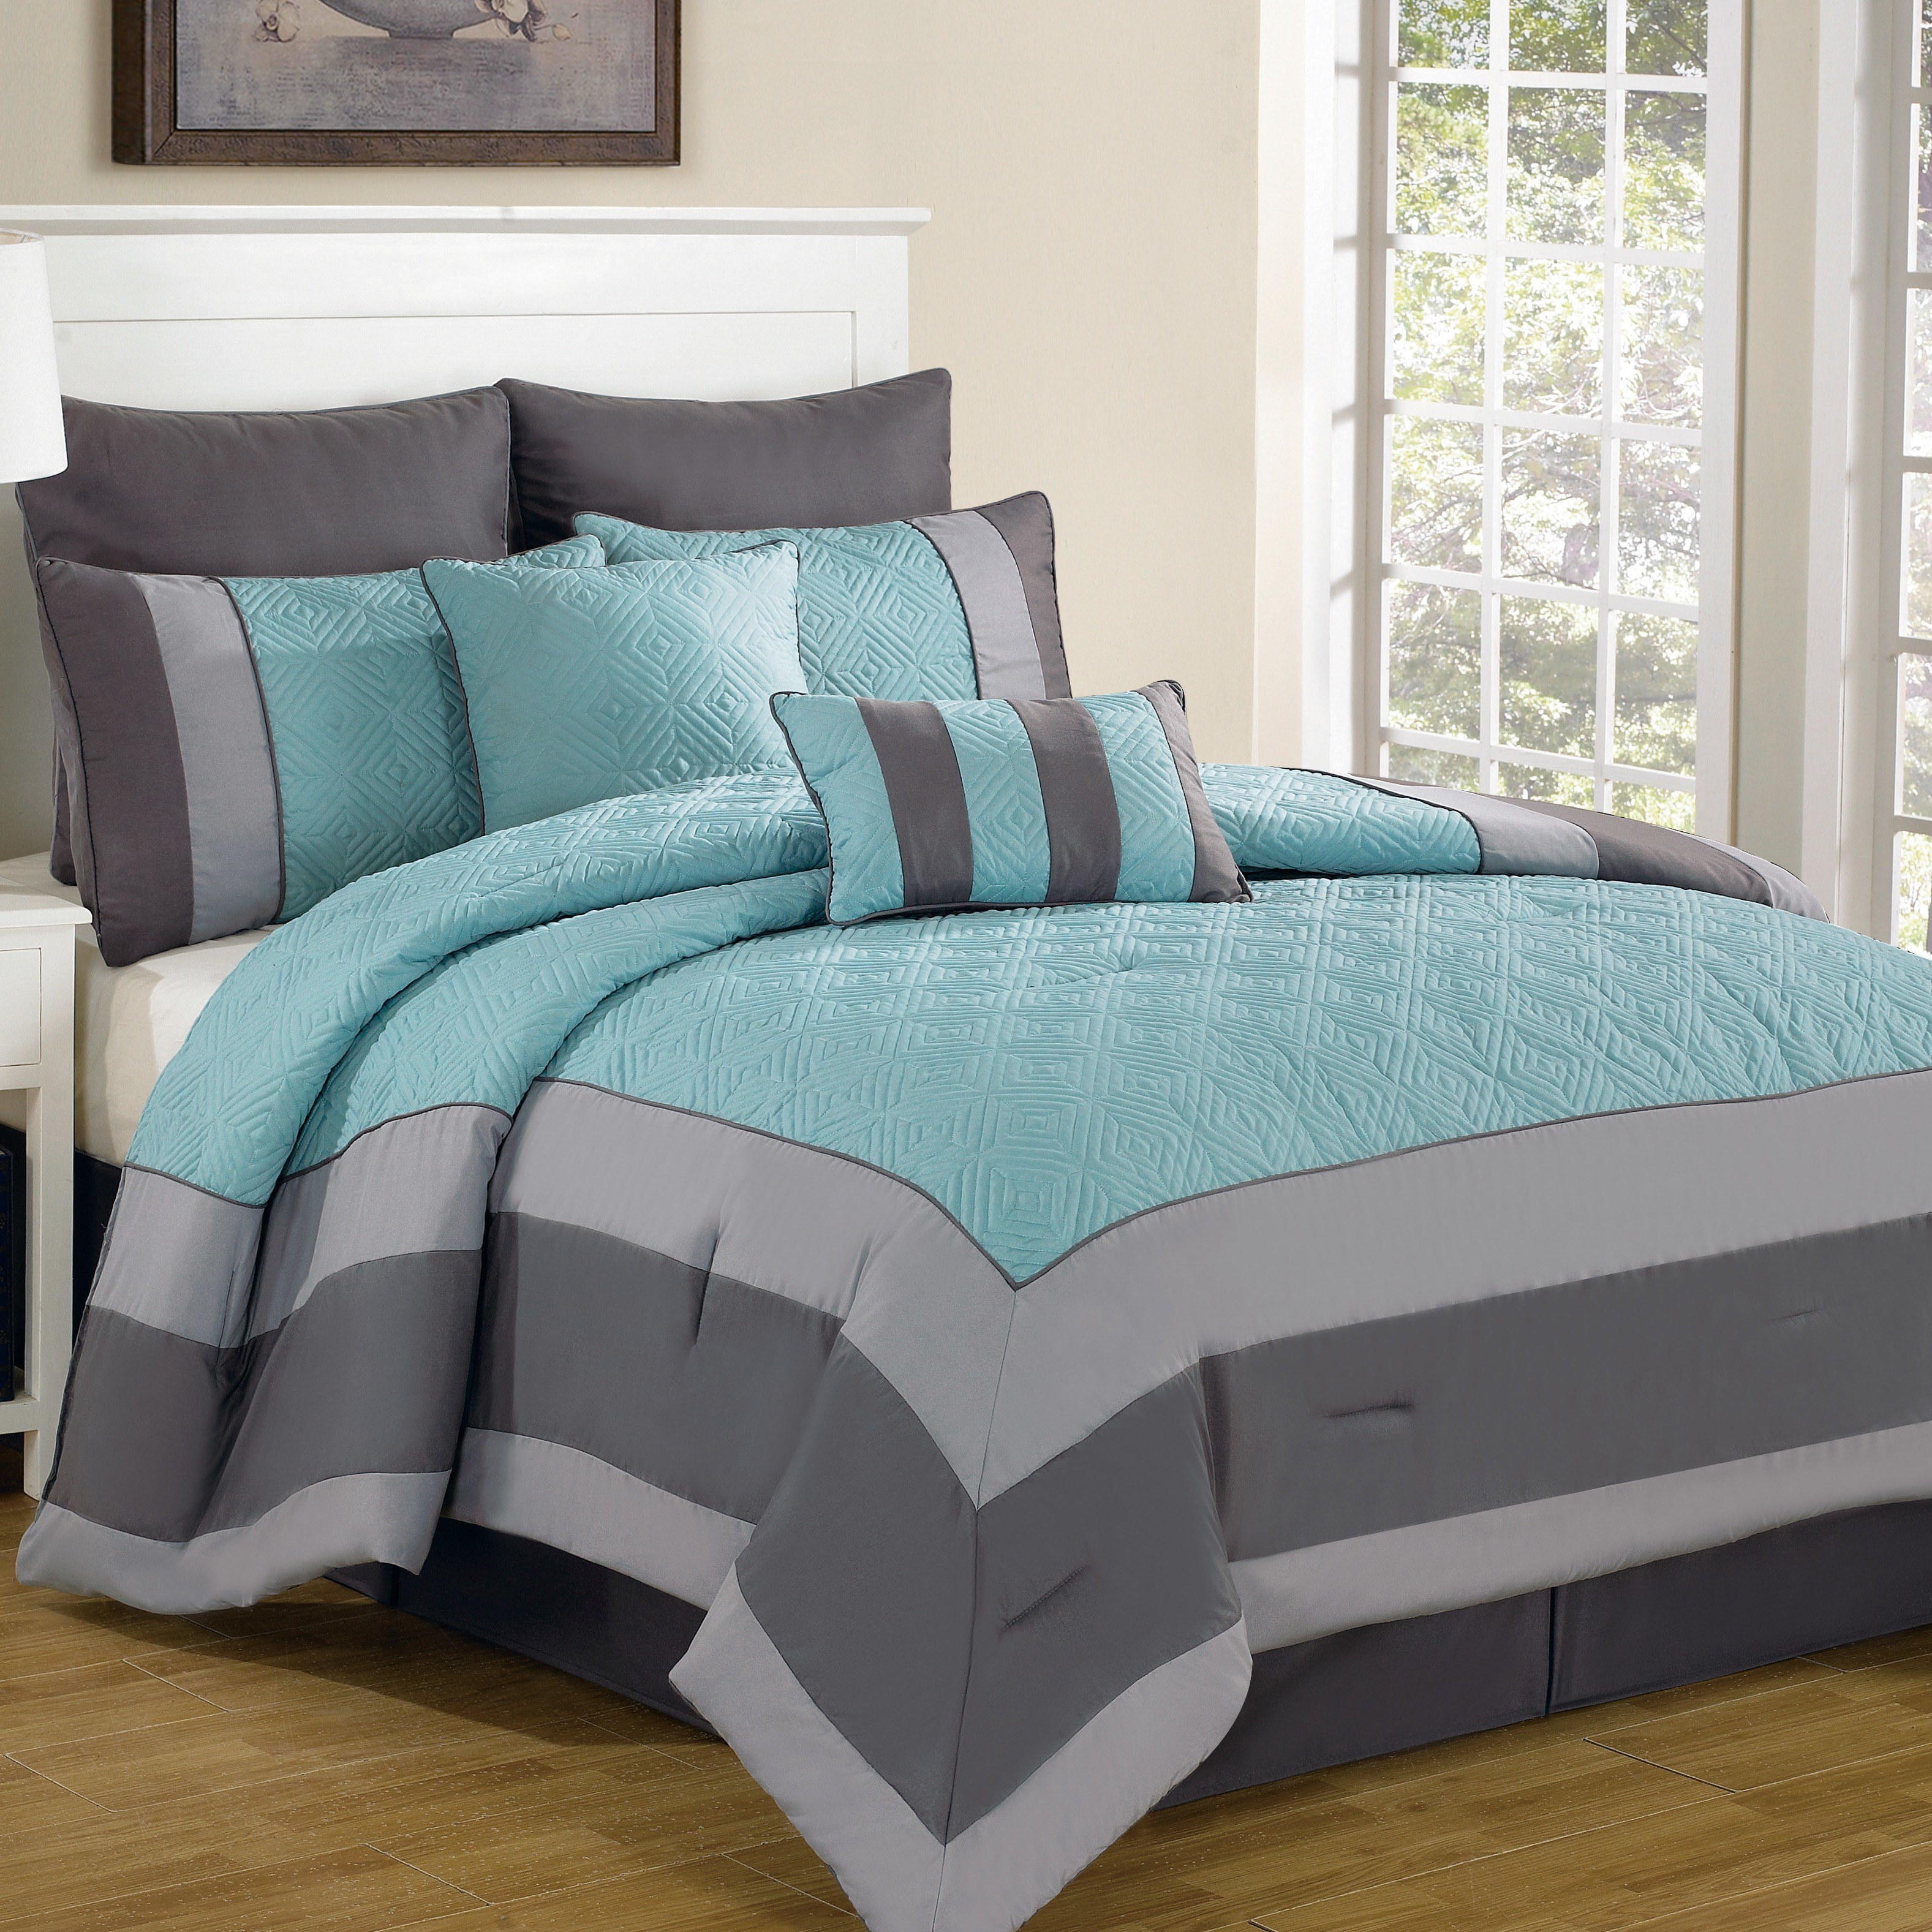 Best Dr International Spain 8 Piece Comforter Set Reviews With Pictures